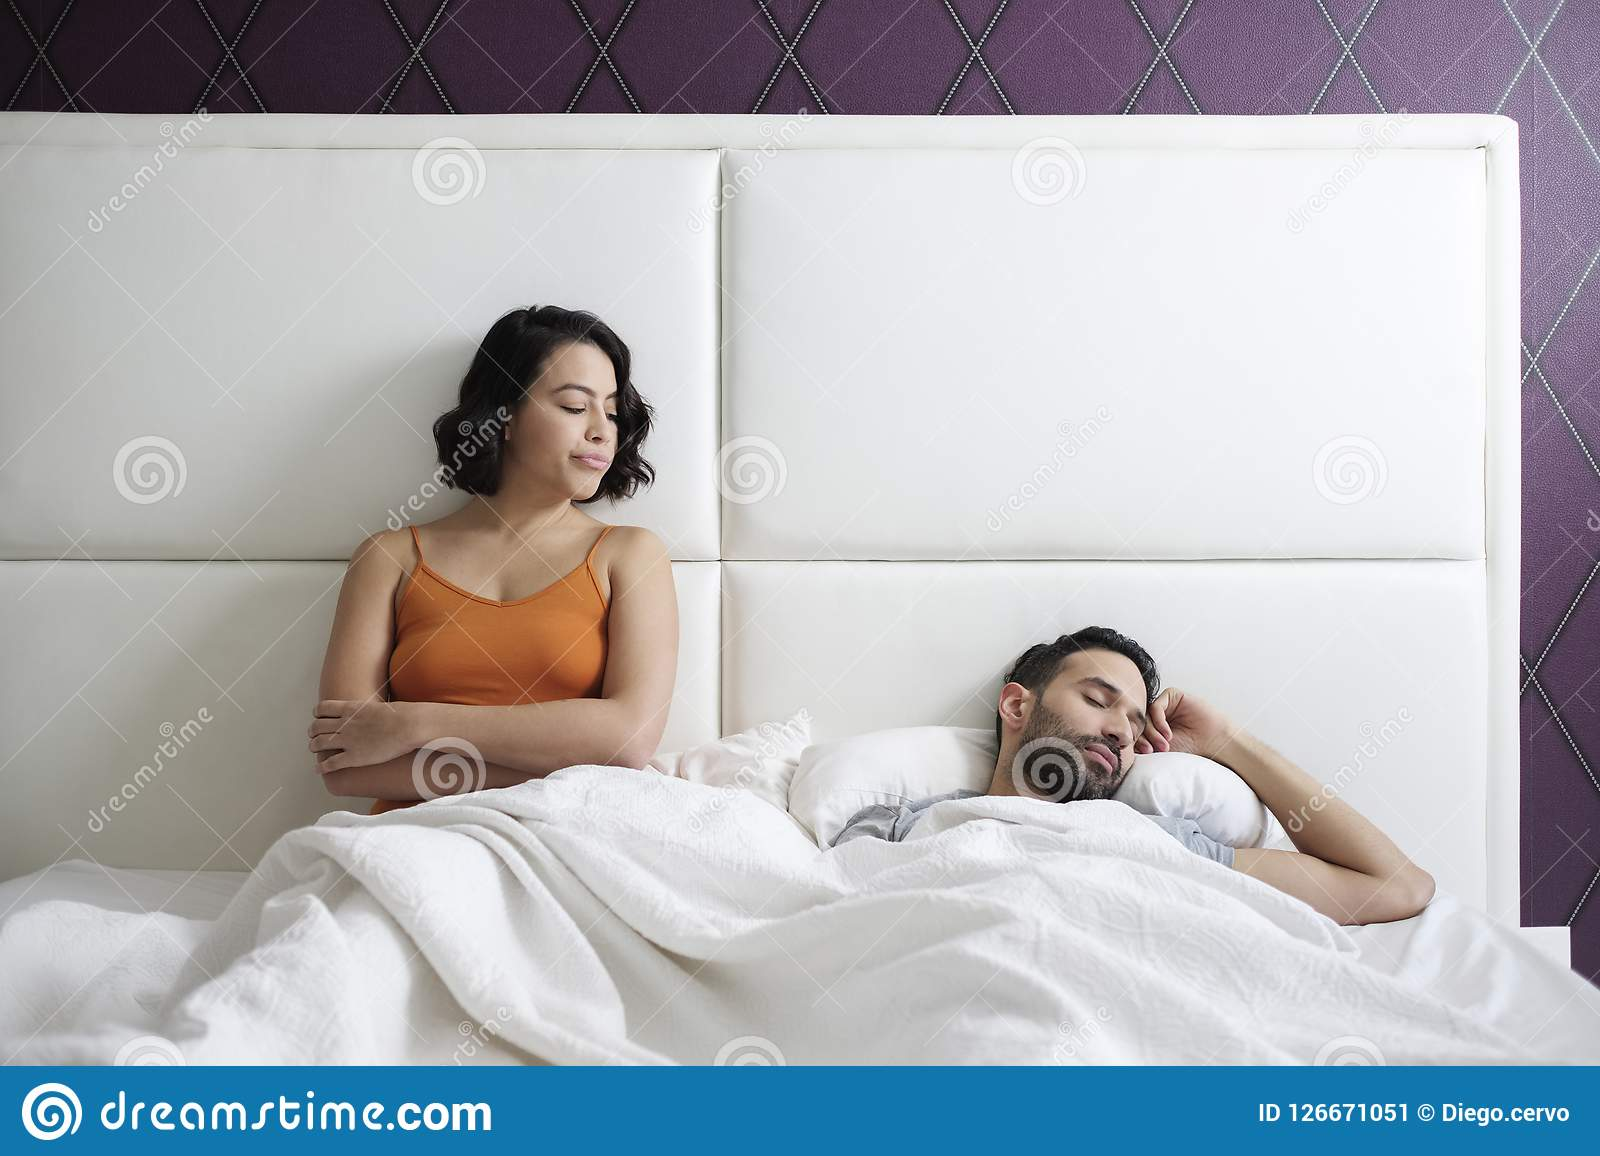 Men have sex at home with other women